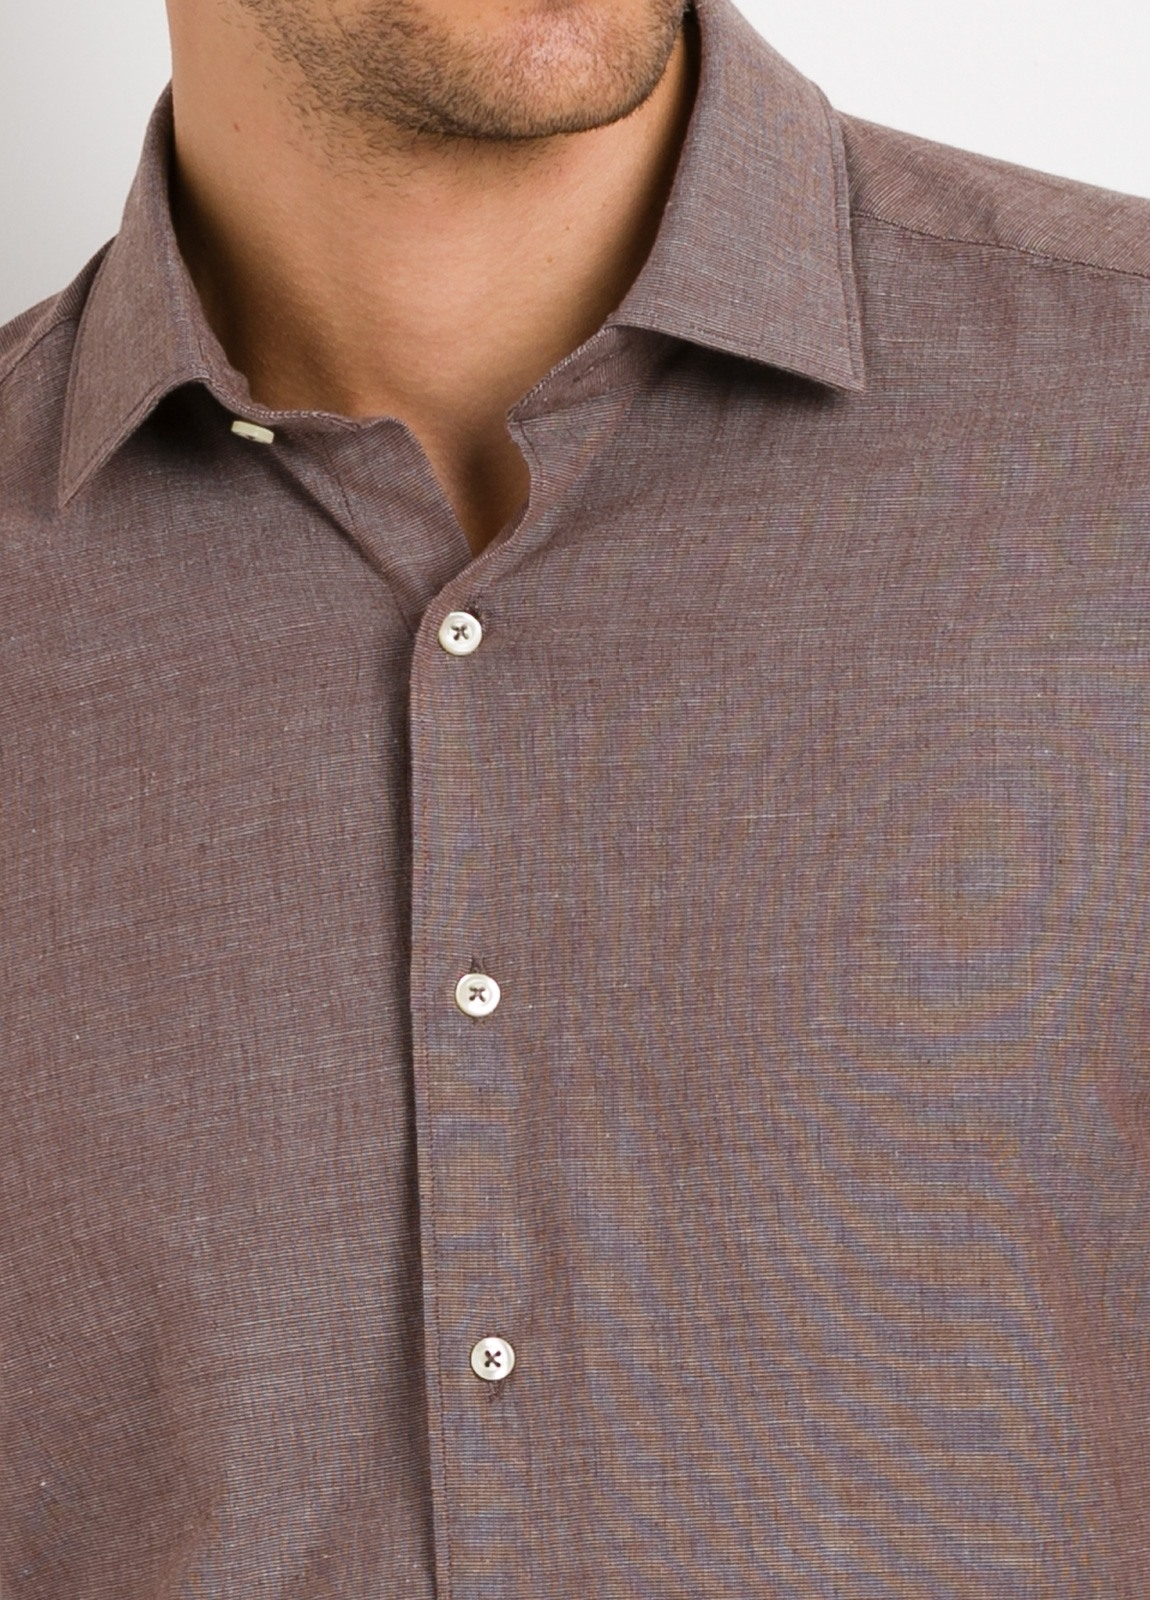 Camisa Leisure Wear REGULAR FIT modelo PORTO, tejido fil a fil color marrón. 100% Algodón. - Ítem2